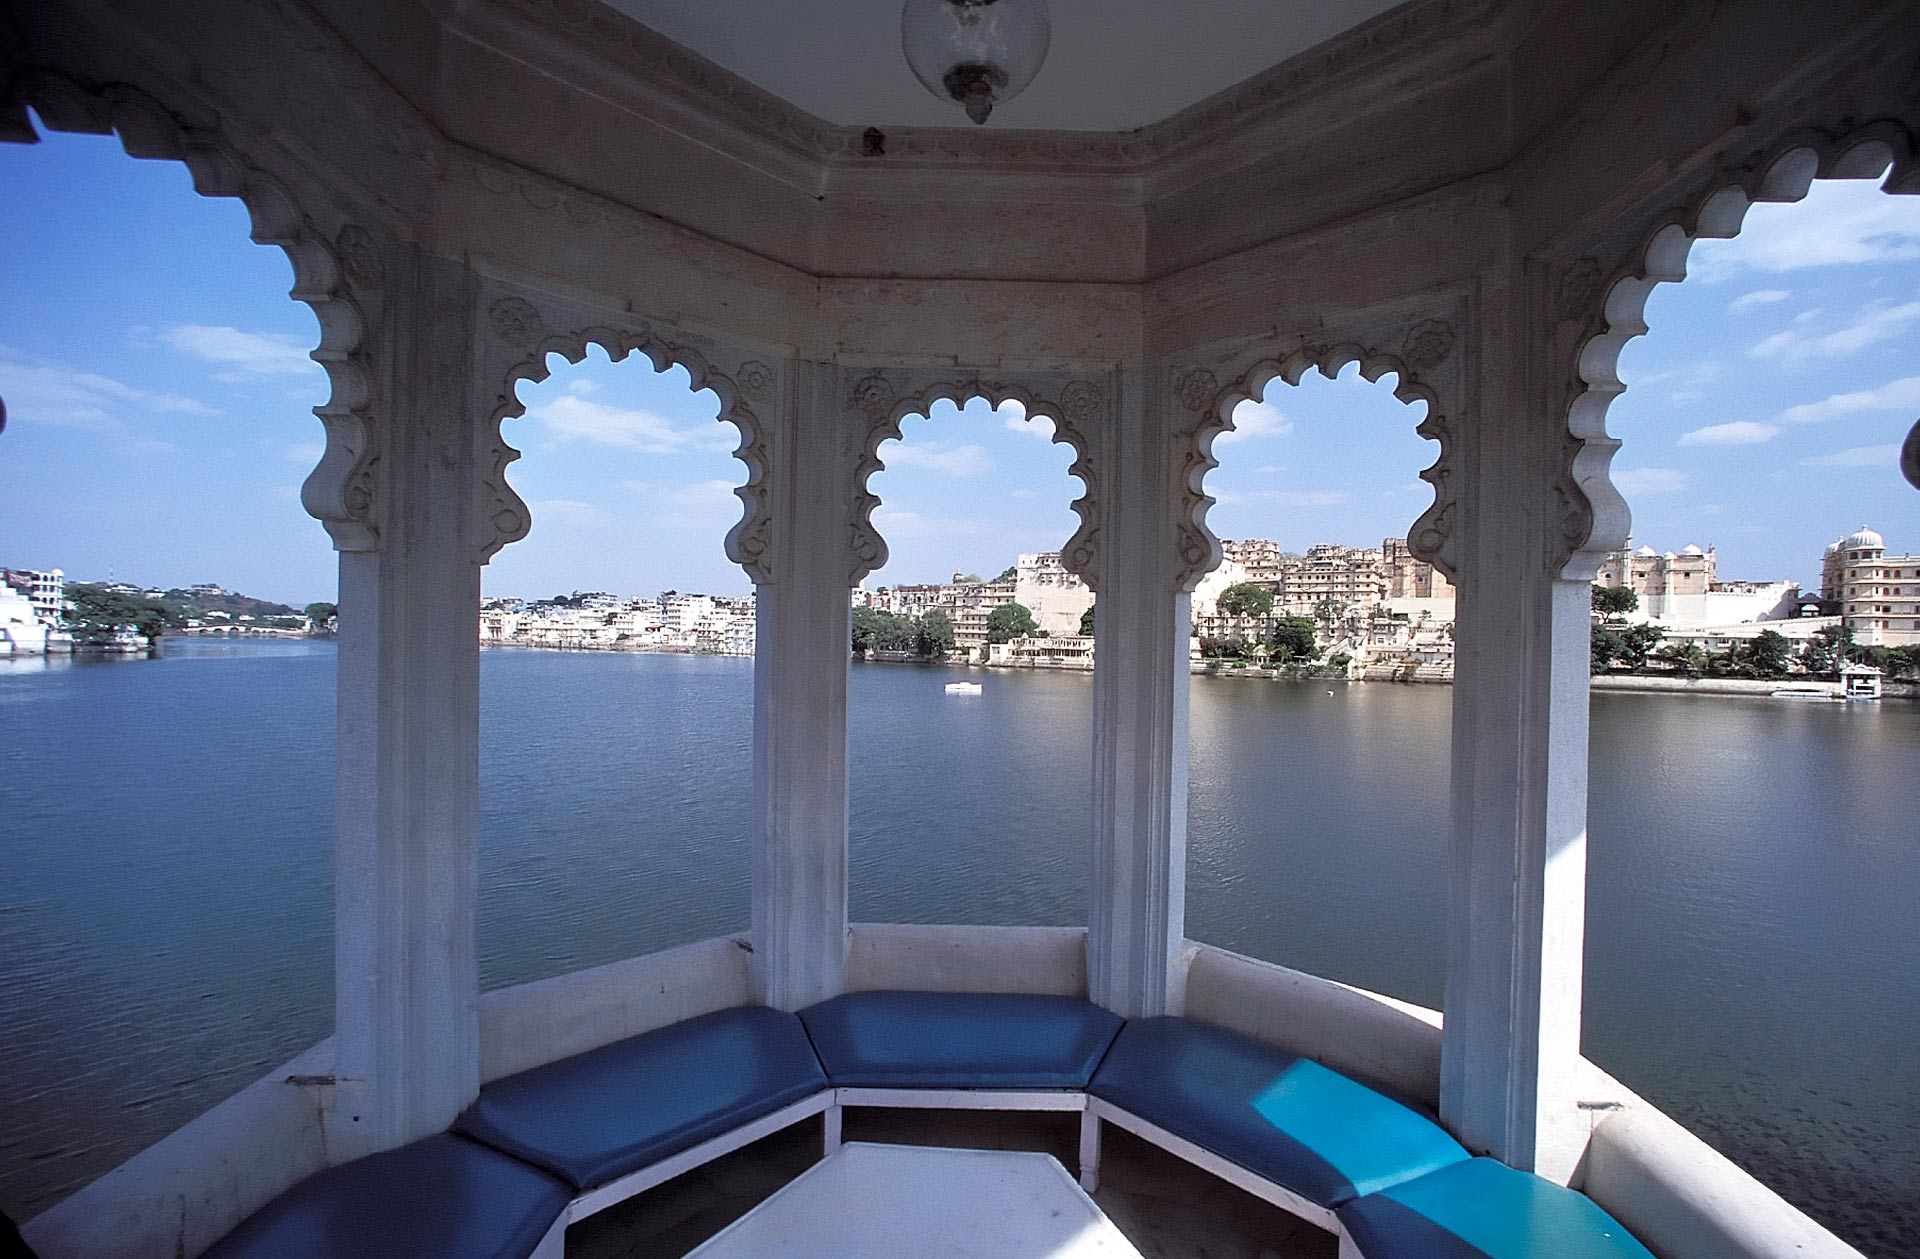 Lake Palace Hotel, Udaipur, Rajasthan, India